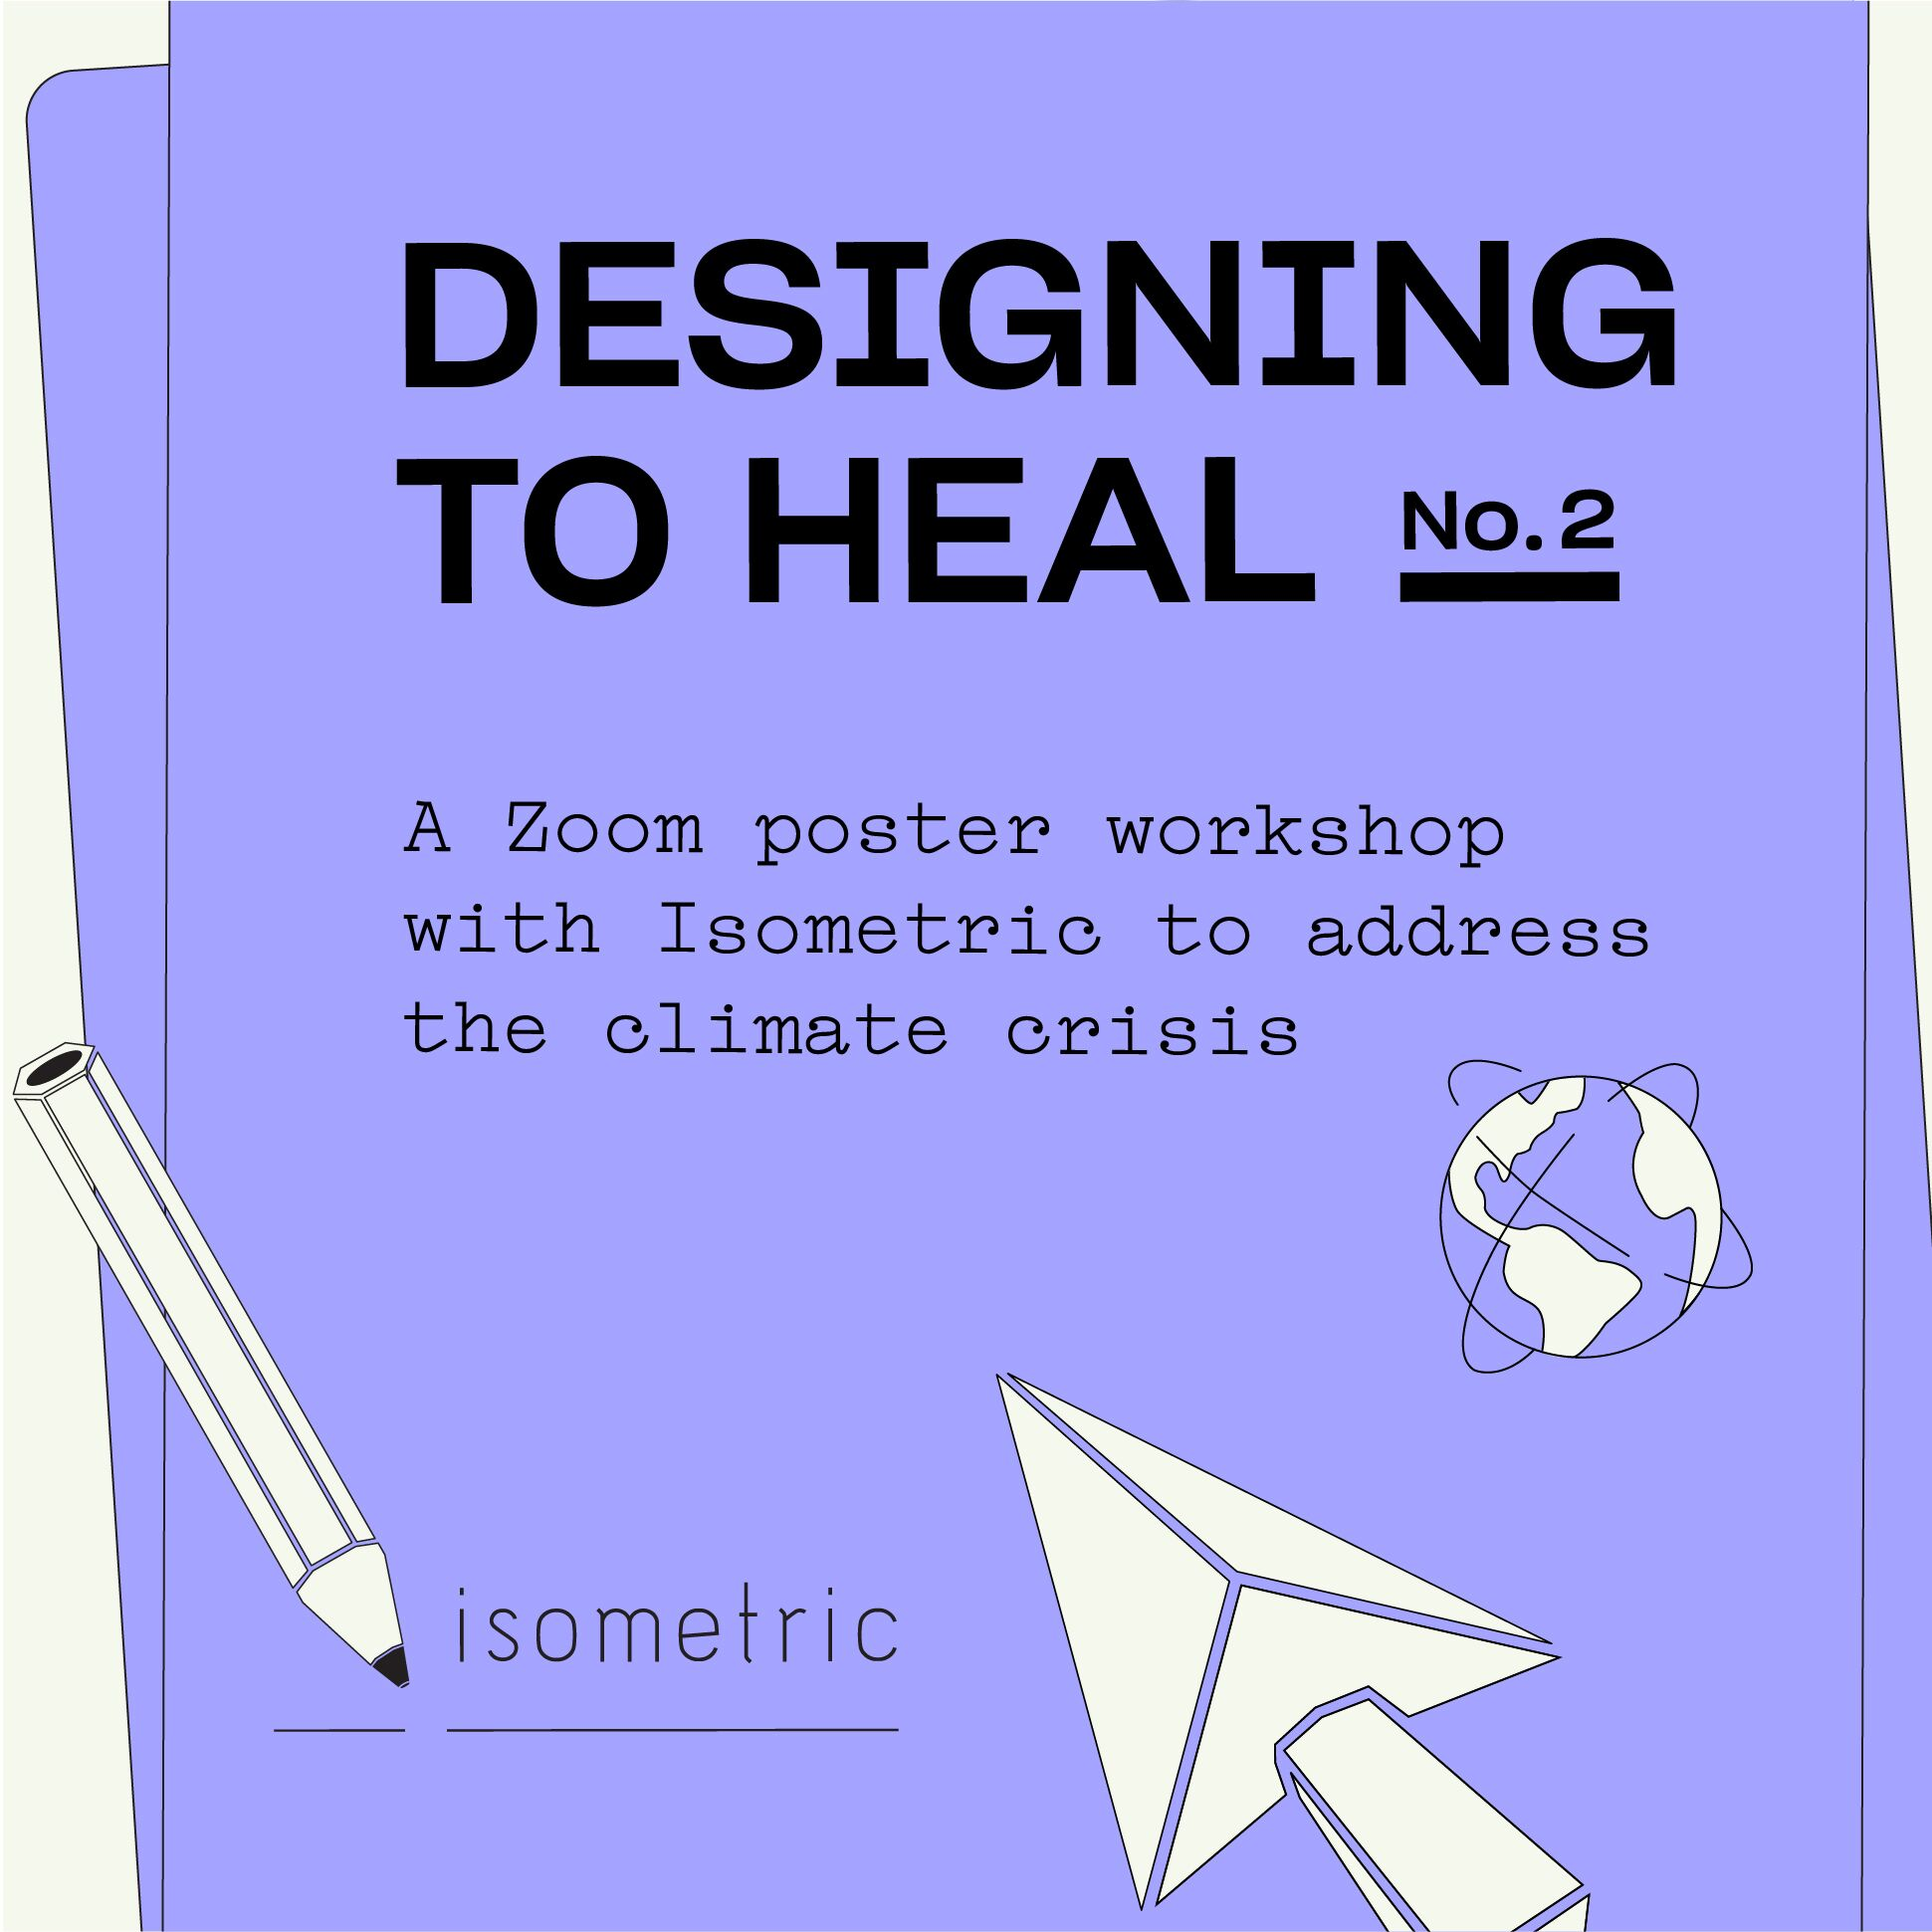 type-based promotional graphic for a Designing to Heal poster design workshop